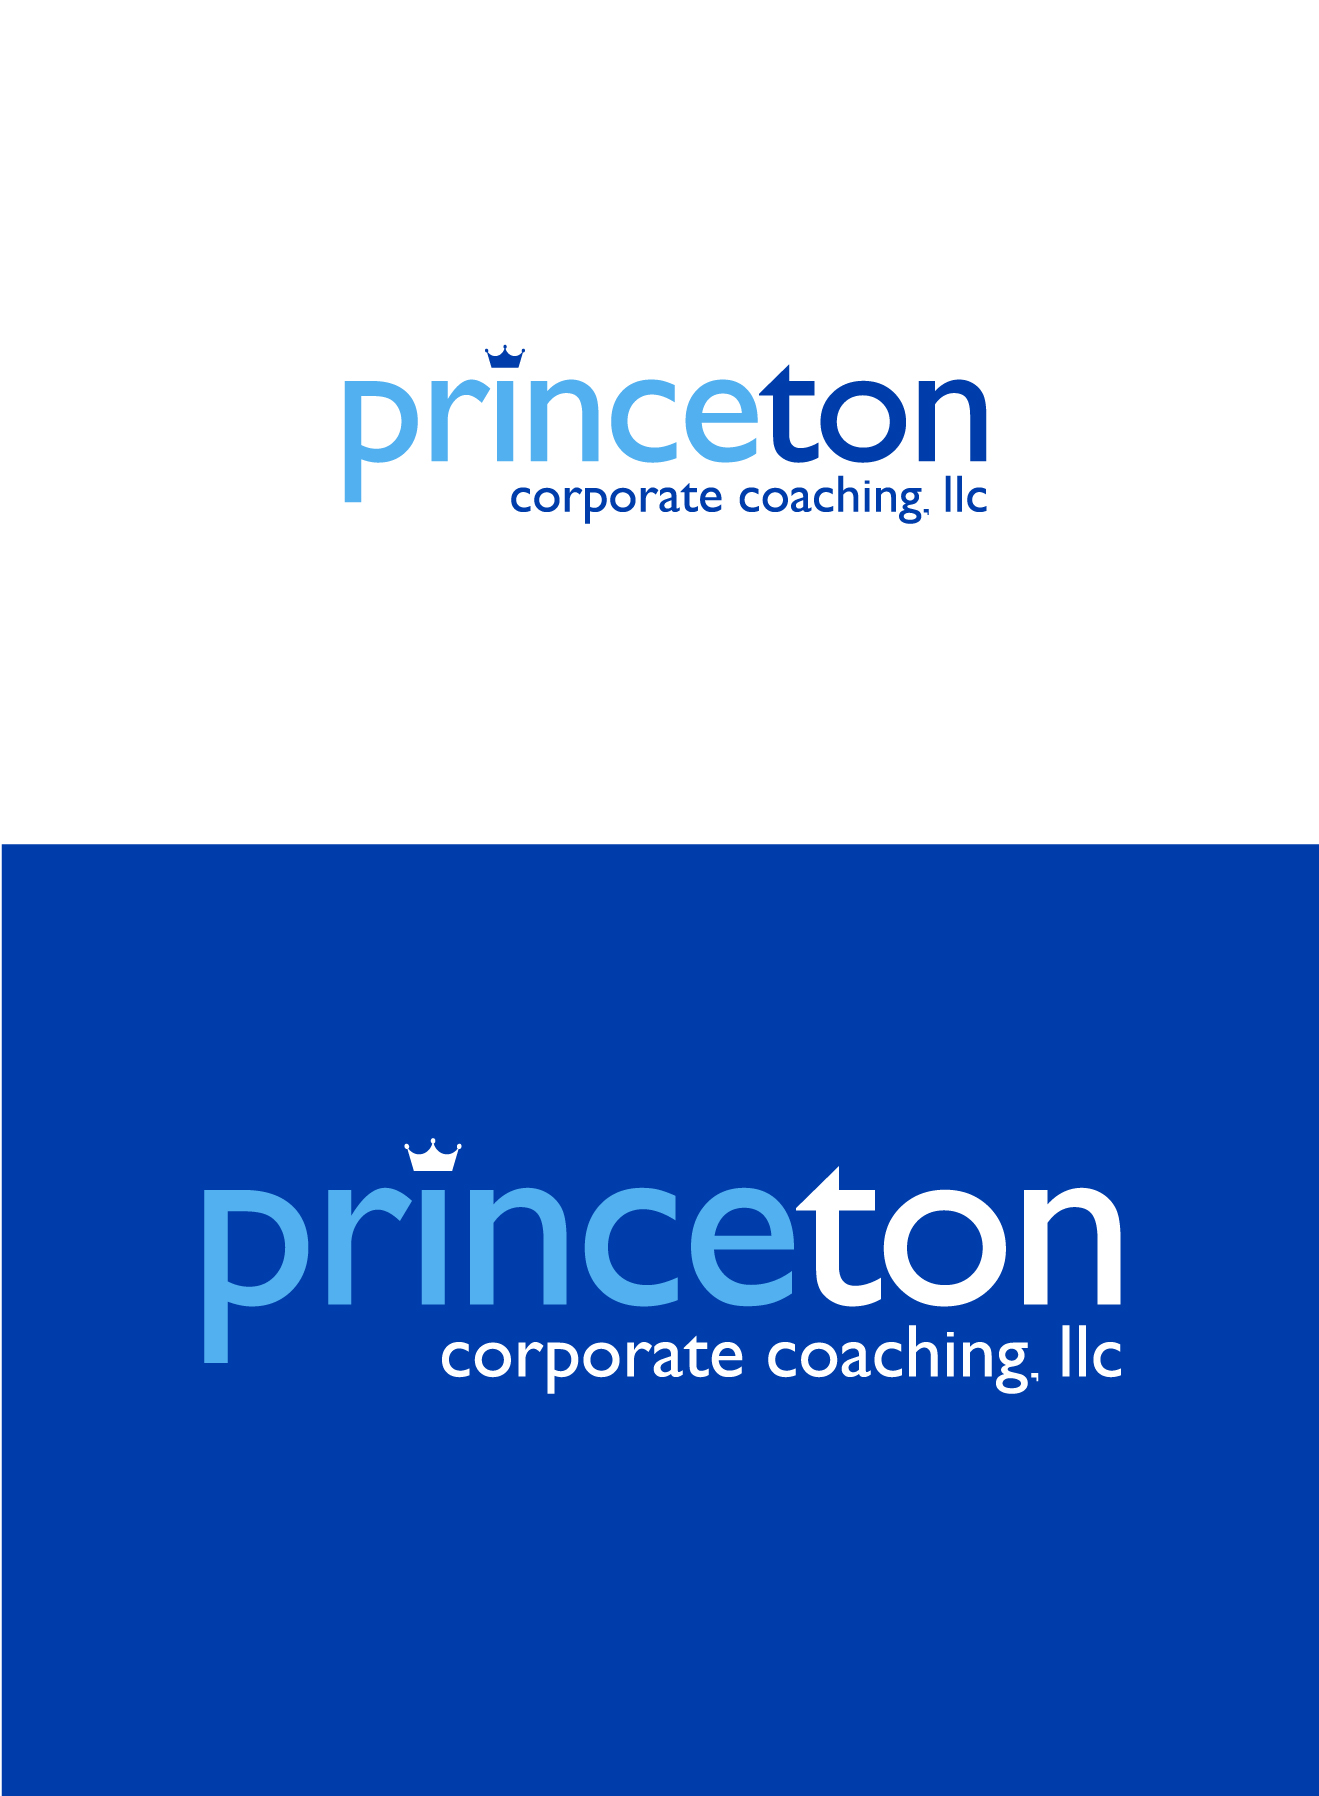 Logo Design by Wilfredo Mendoza - Entry No. 217 in the Logo Design Contest Unique Logo Design Wanted for Princeton Corporate Coaching, LLC.